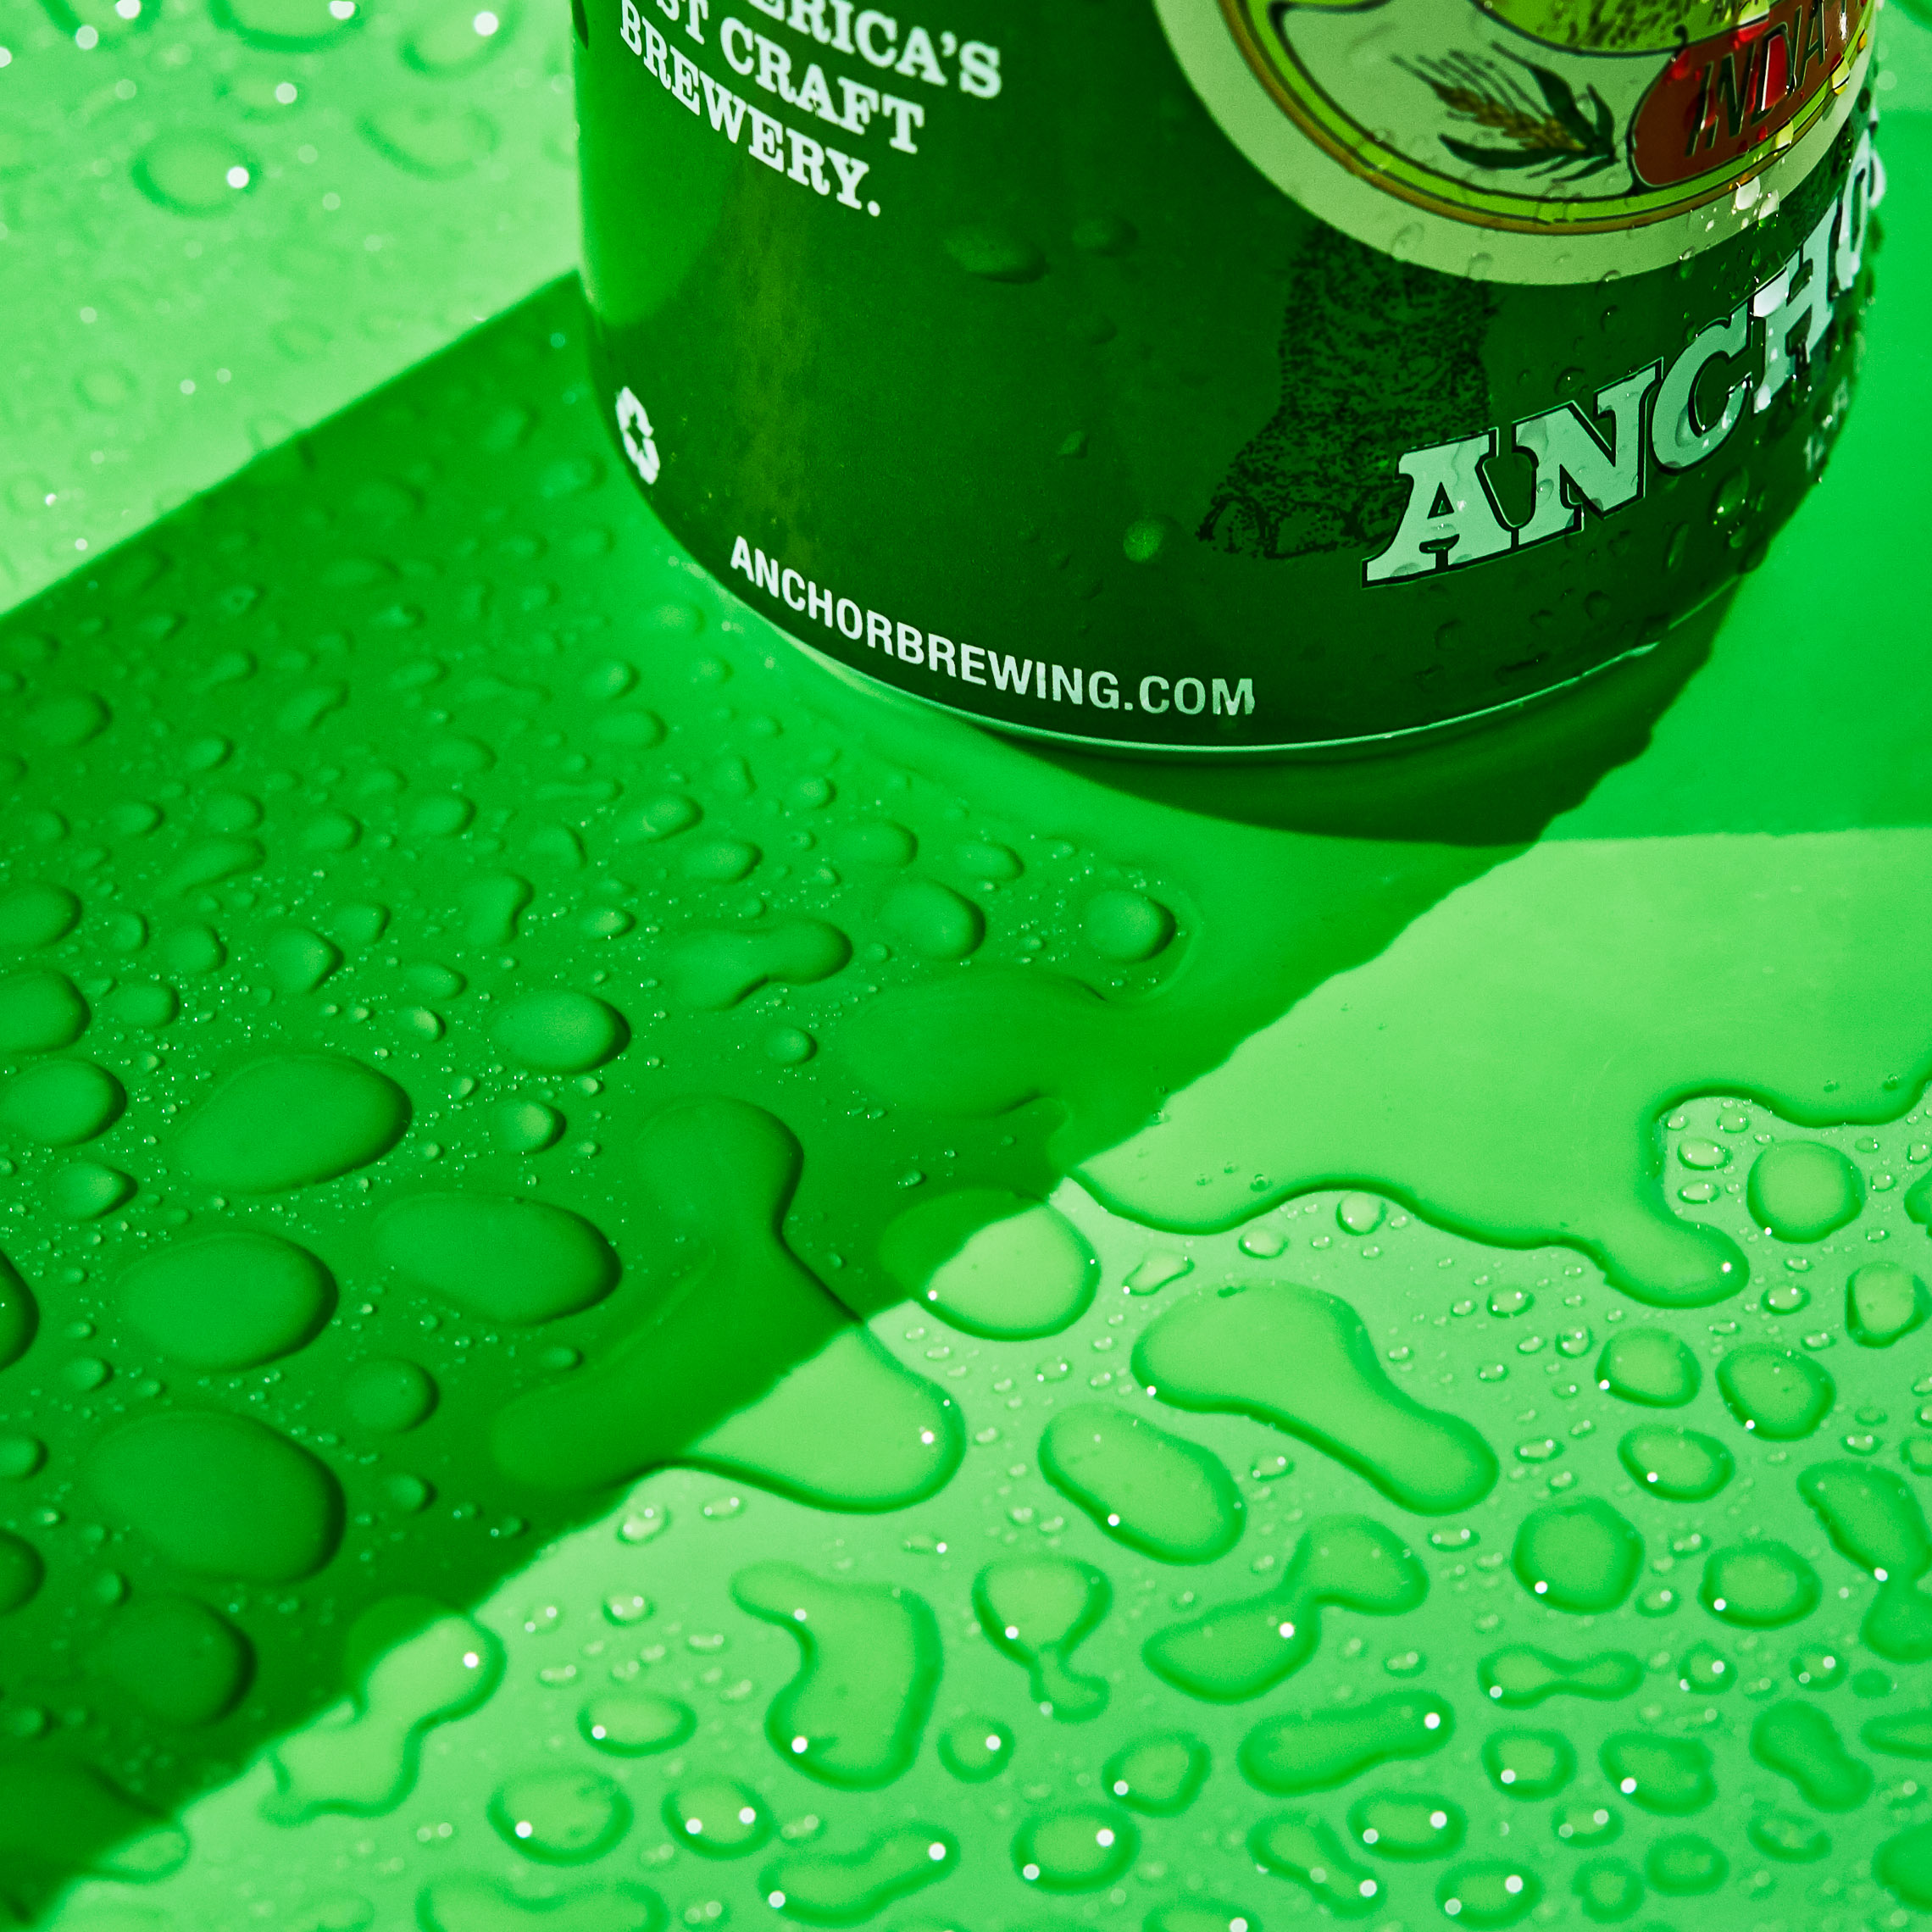 Anchor_Green_3142-Detail_02_FNL